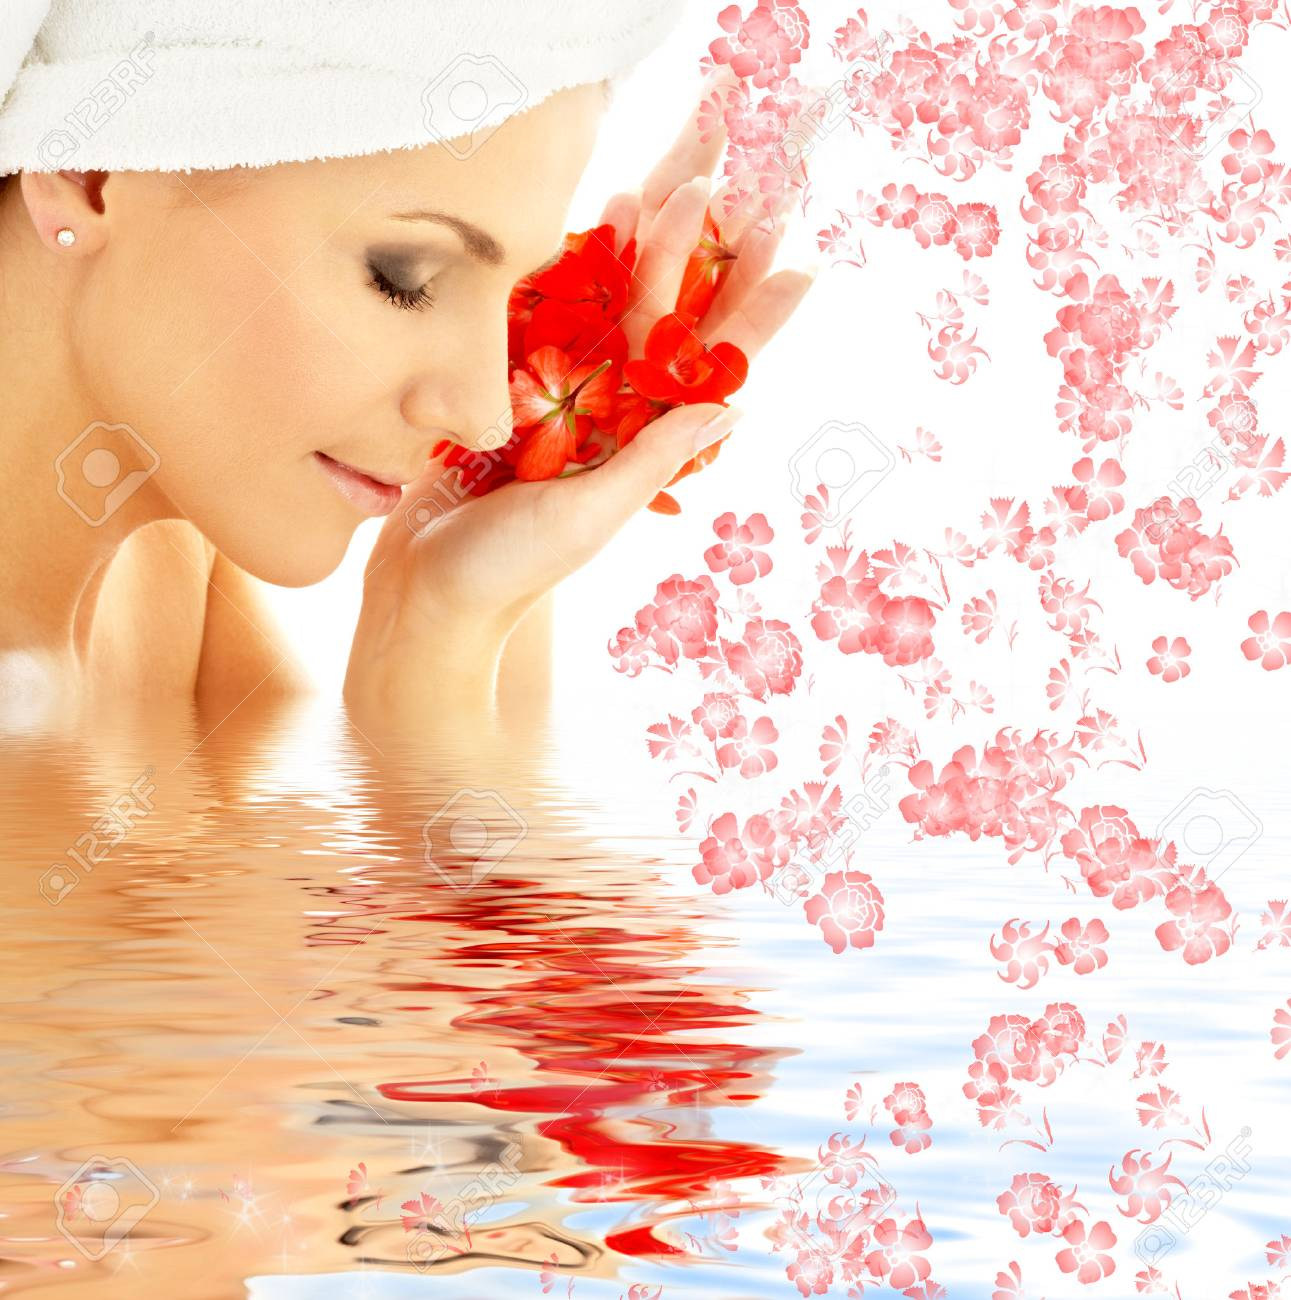 lovely woman with red flower petals in water Stock Photo - 1566702